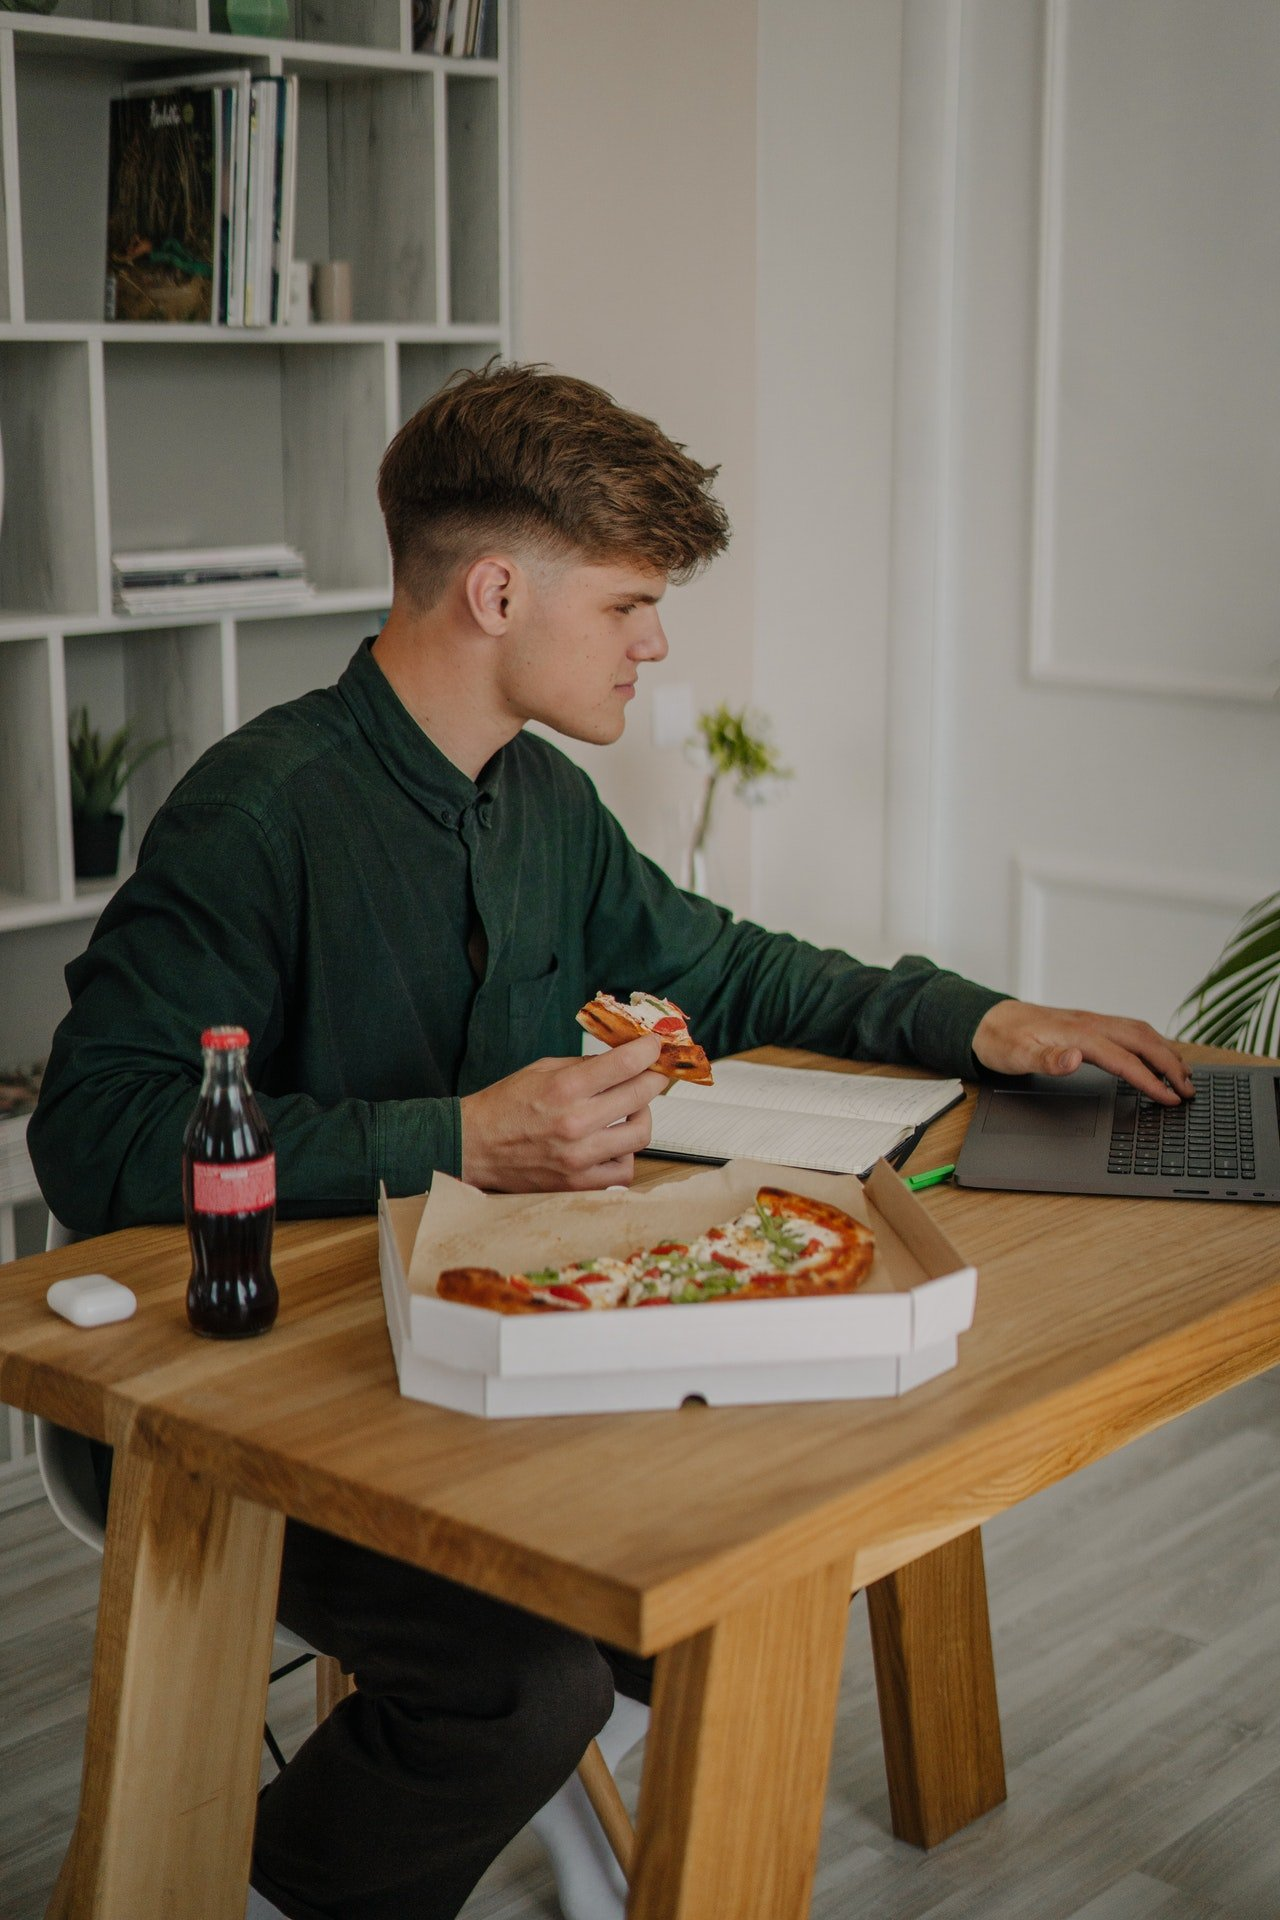 Photo of a man eating while working   Photo: Pexels